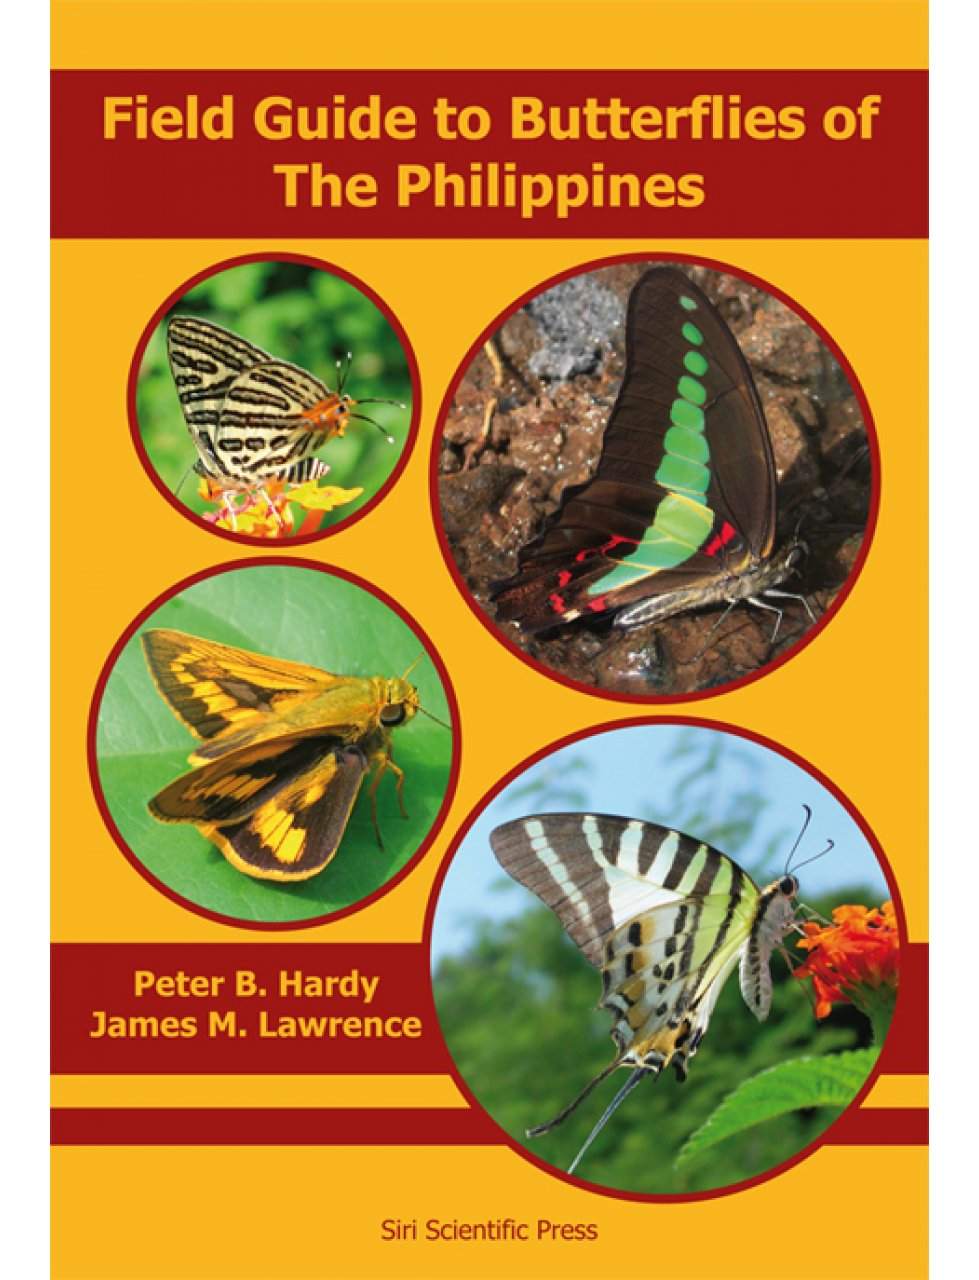 New Book Field Guide To Butterflies Of The Philippines